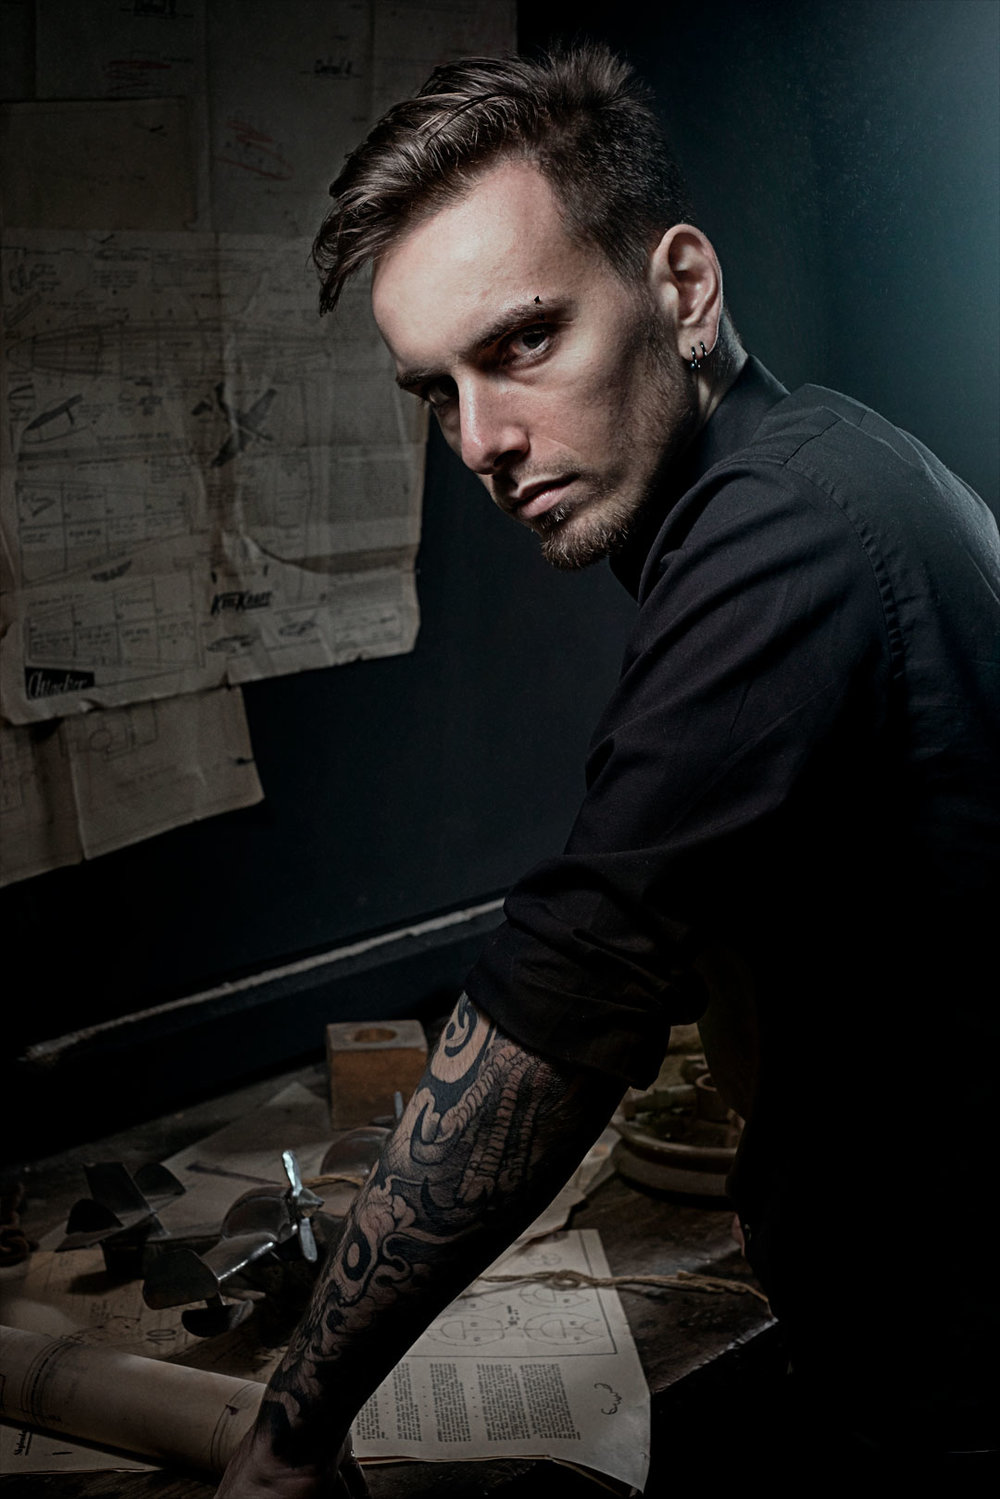 SITE-photo-band-metal-portrait_andre02.jpg